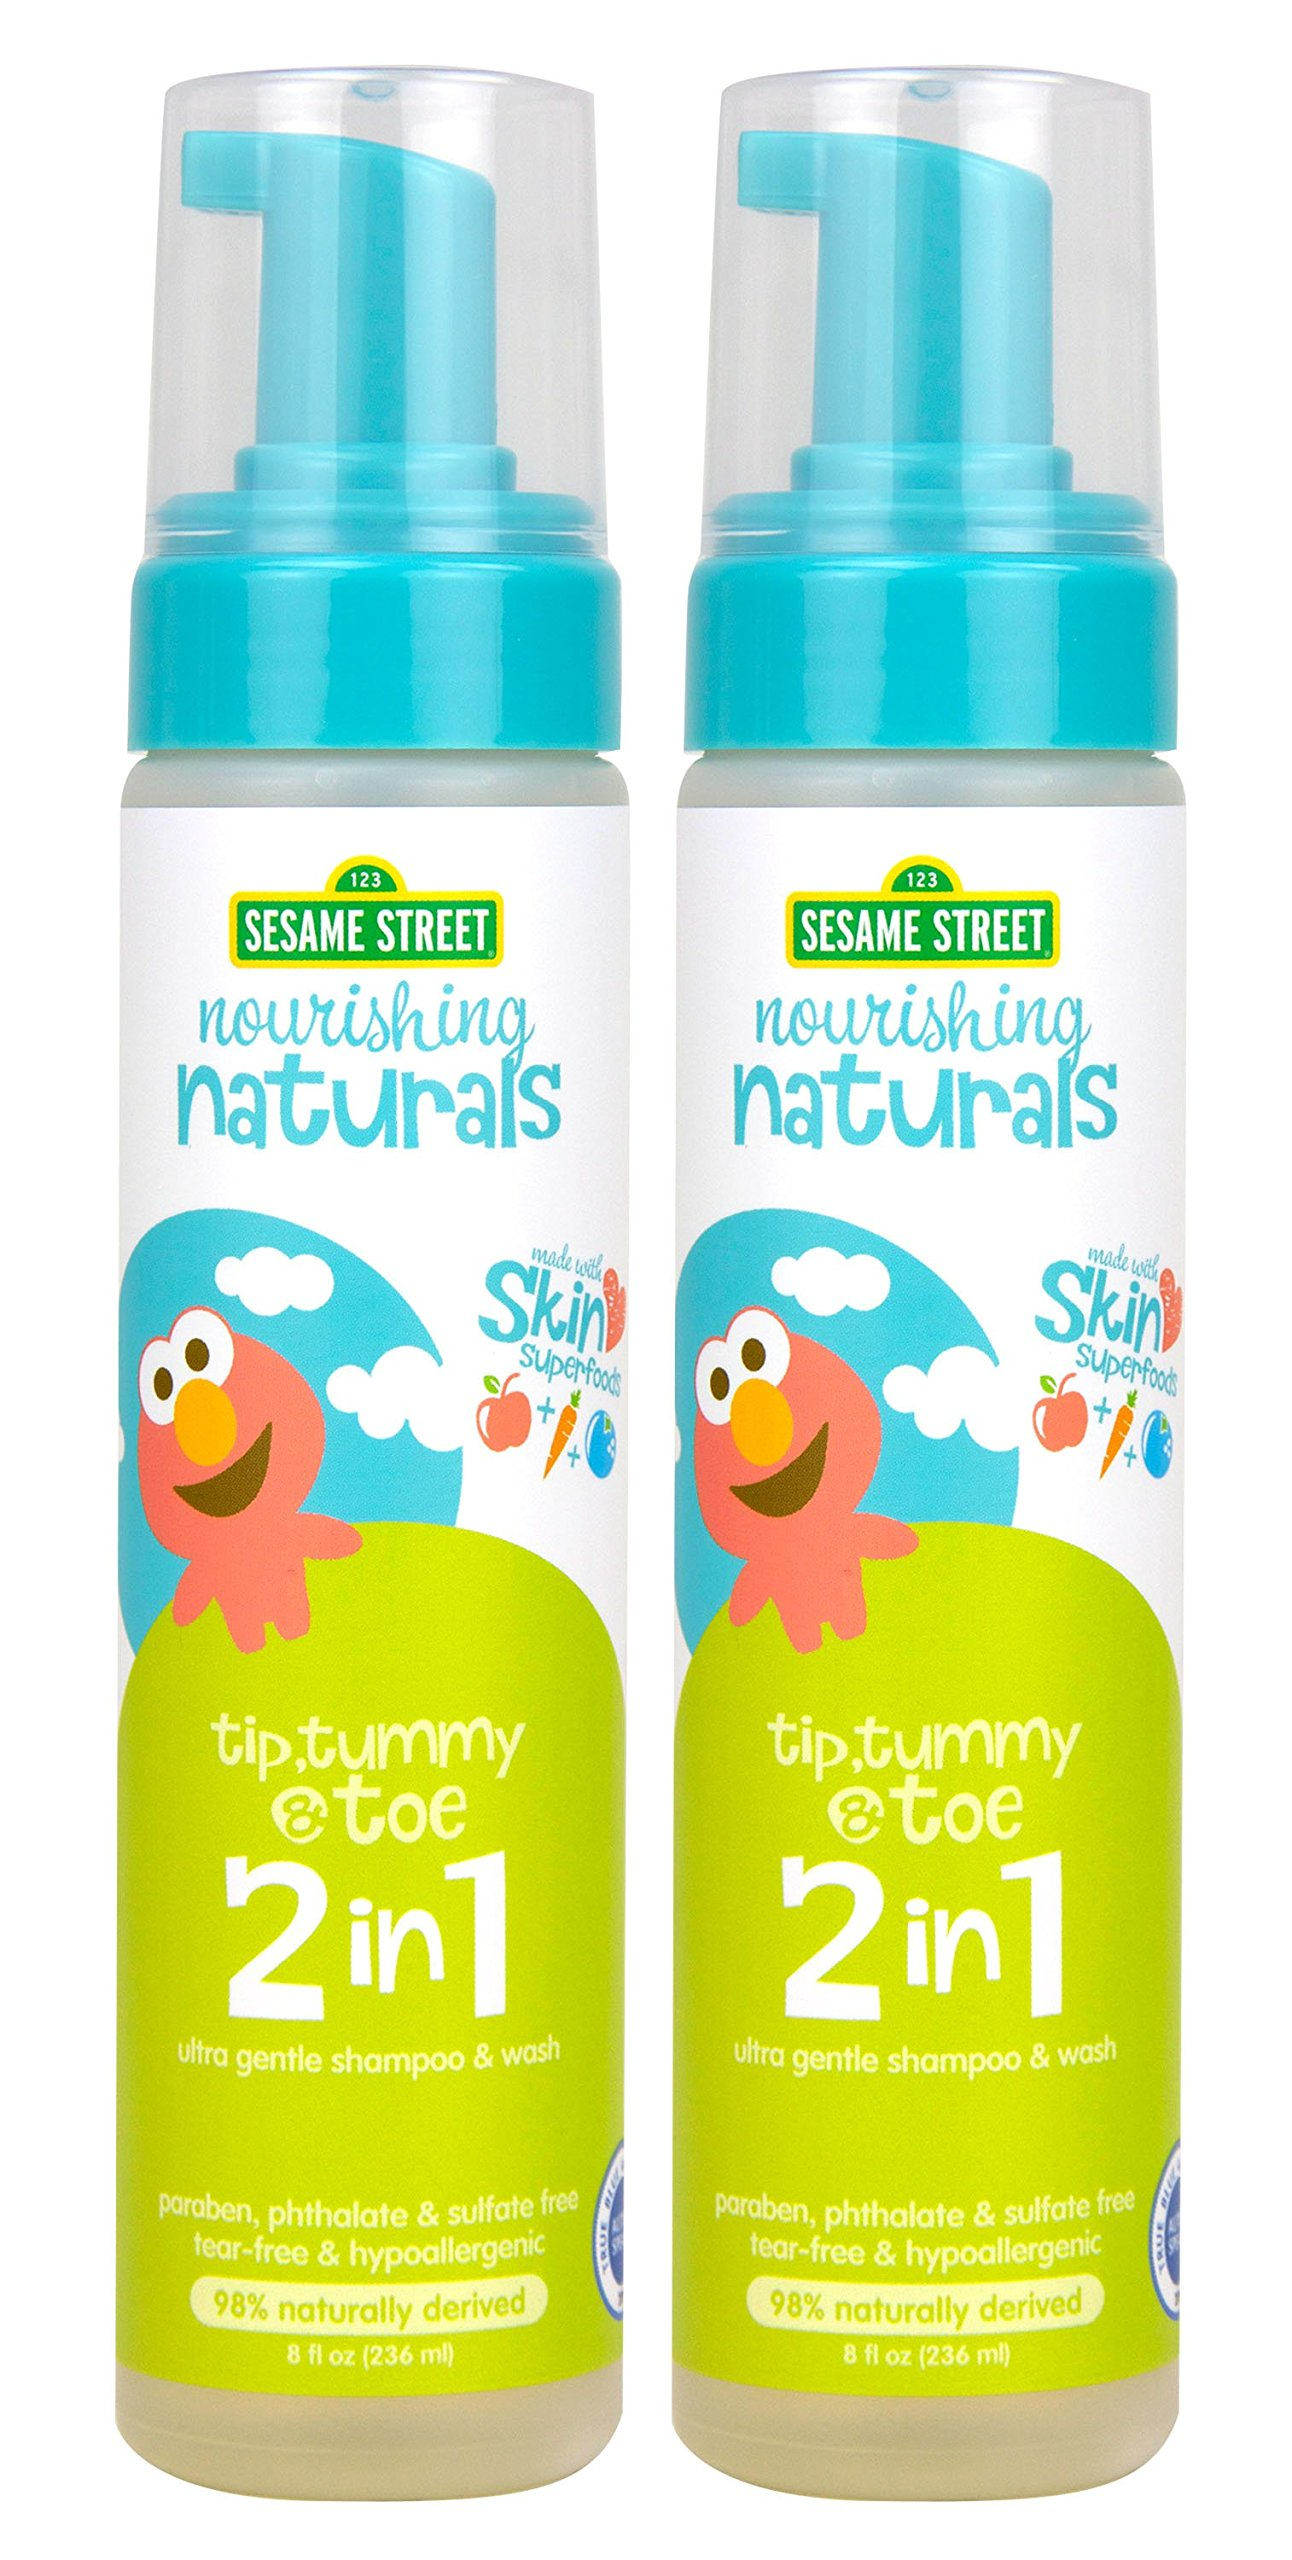 Sesame Street Nourishing Naturals 2-in-1 wash 8 oz 2 Pack